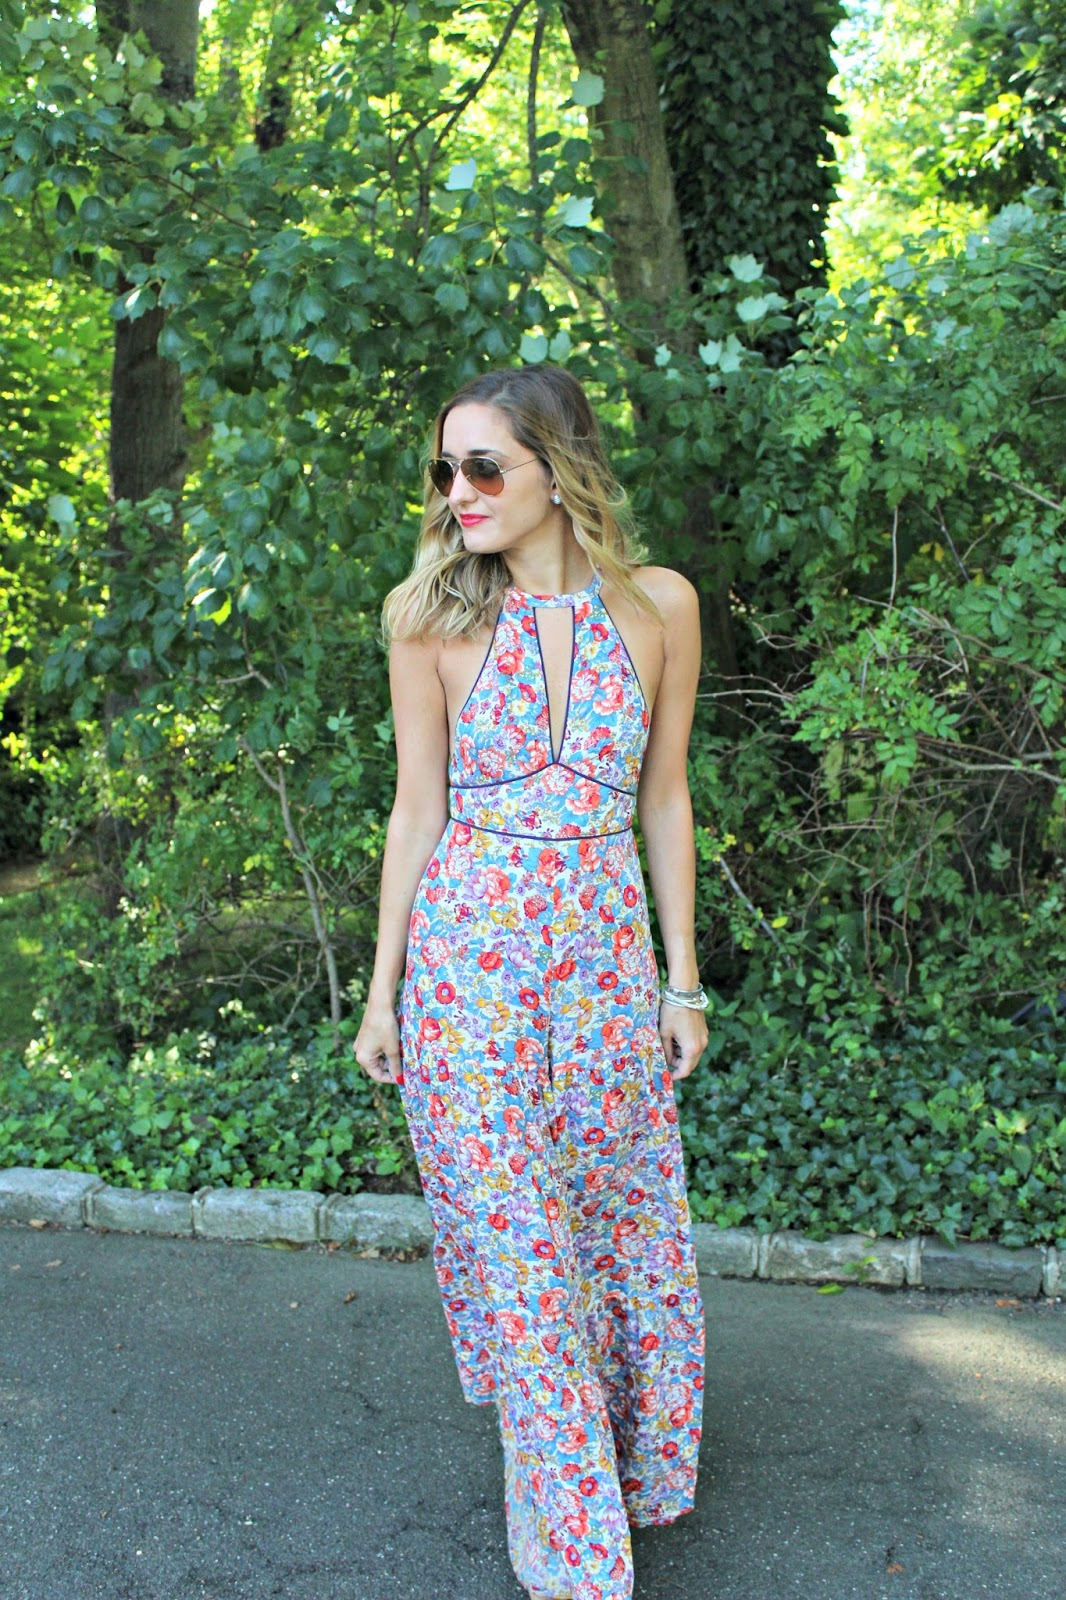 Michelle S Pa I Ge Fashion Blogger Based In New York